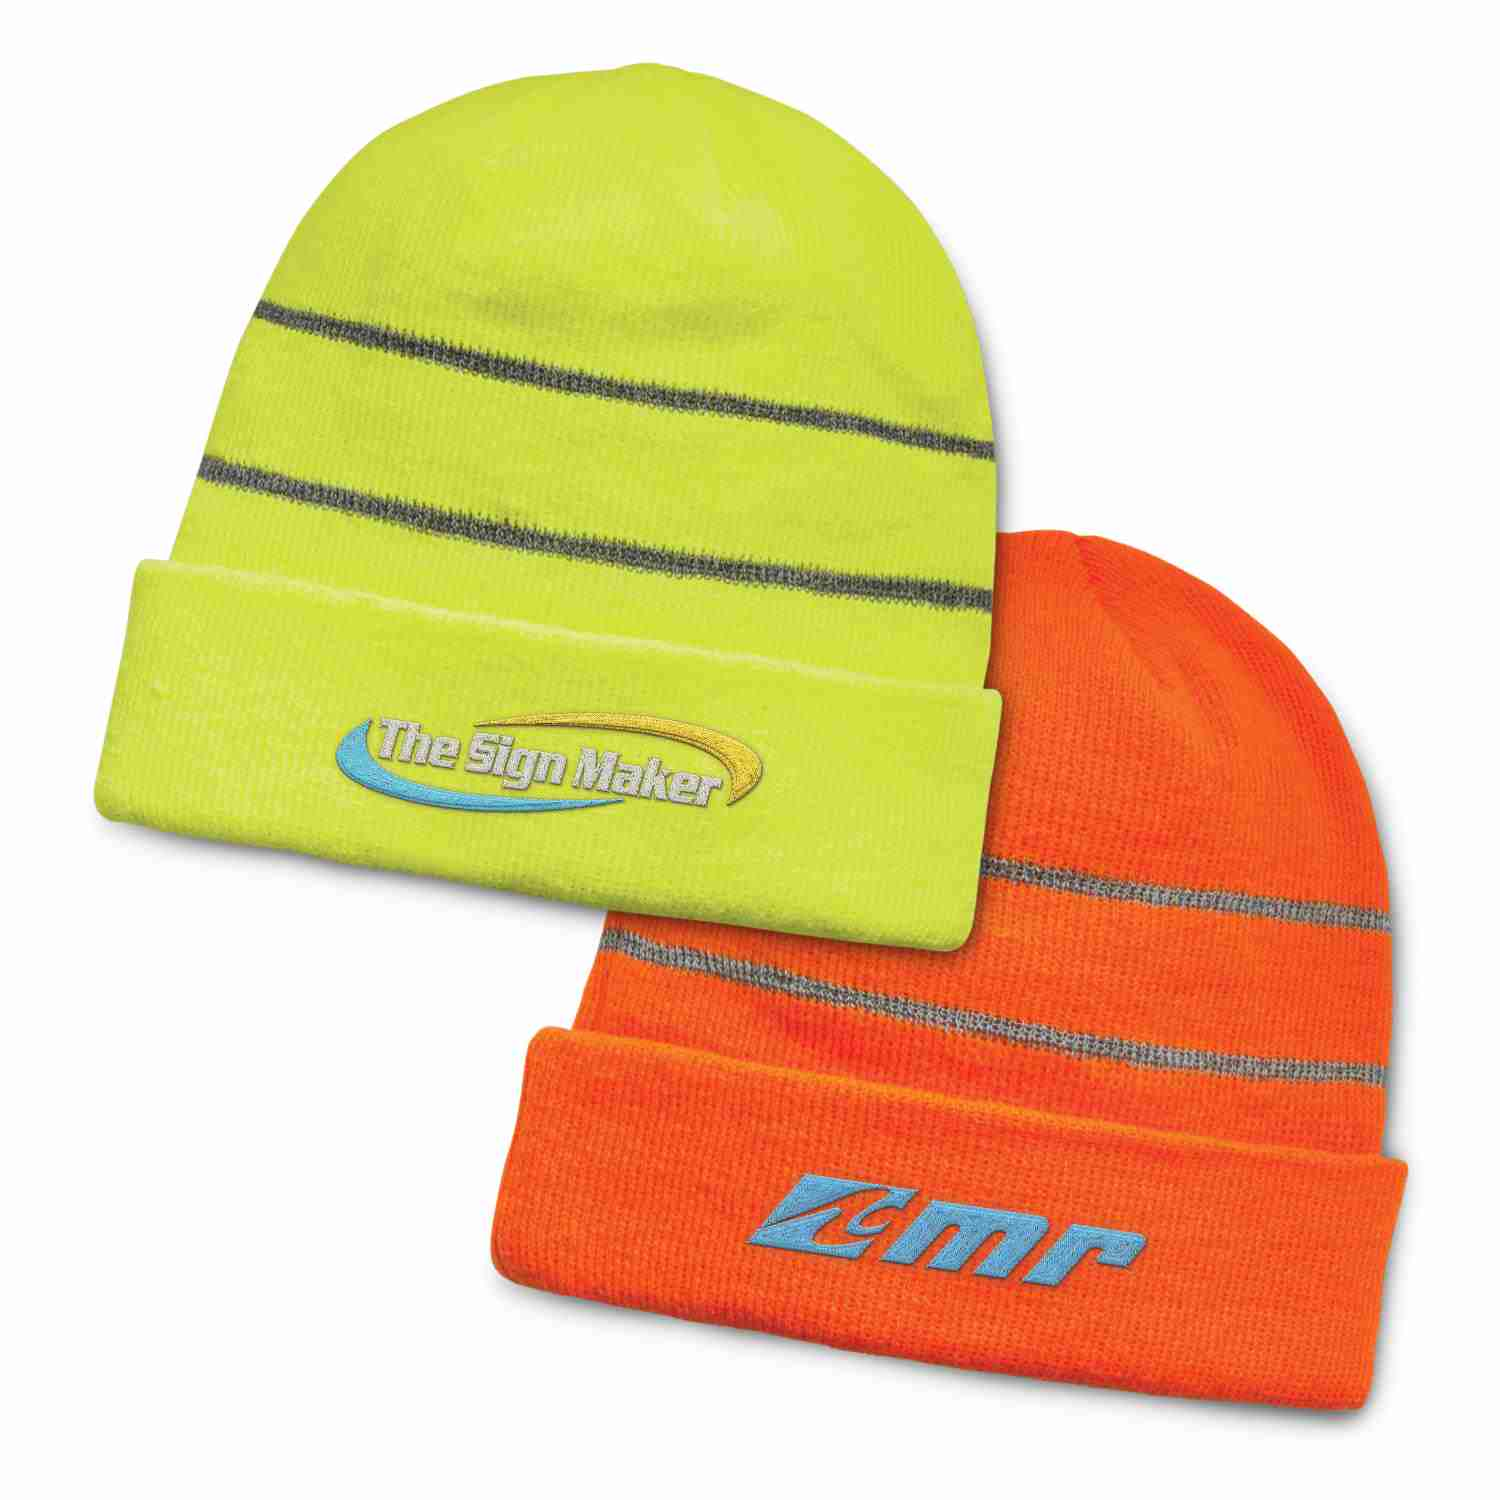 a09a7038f Promotional Forrest Hi-Vis Cuff Beanies: Branded Online   Promotion ...